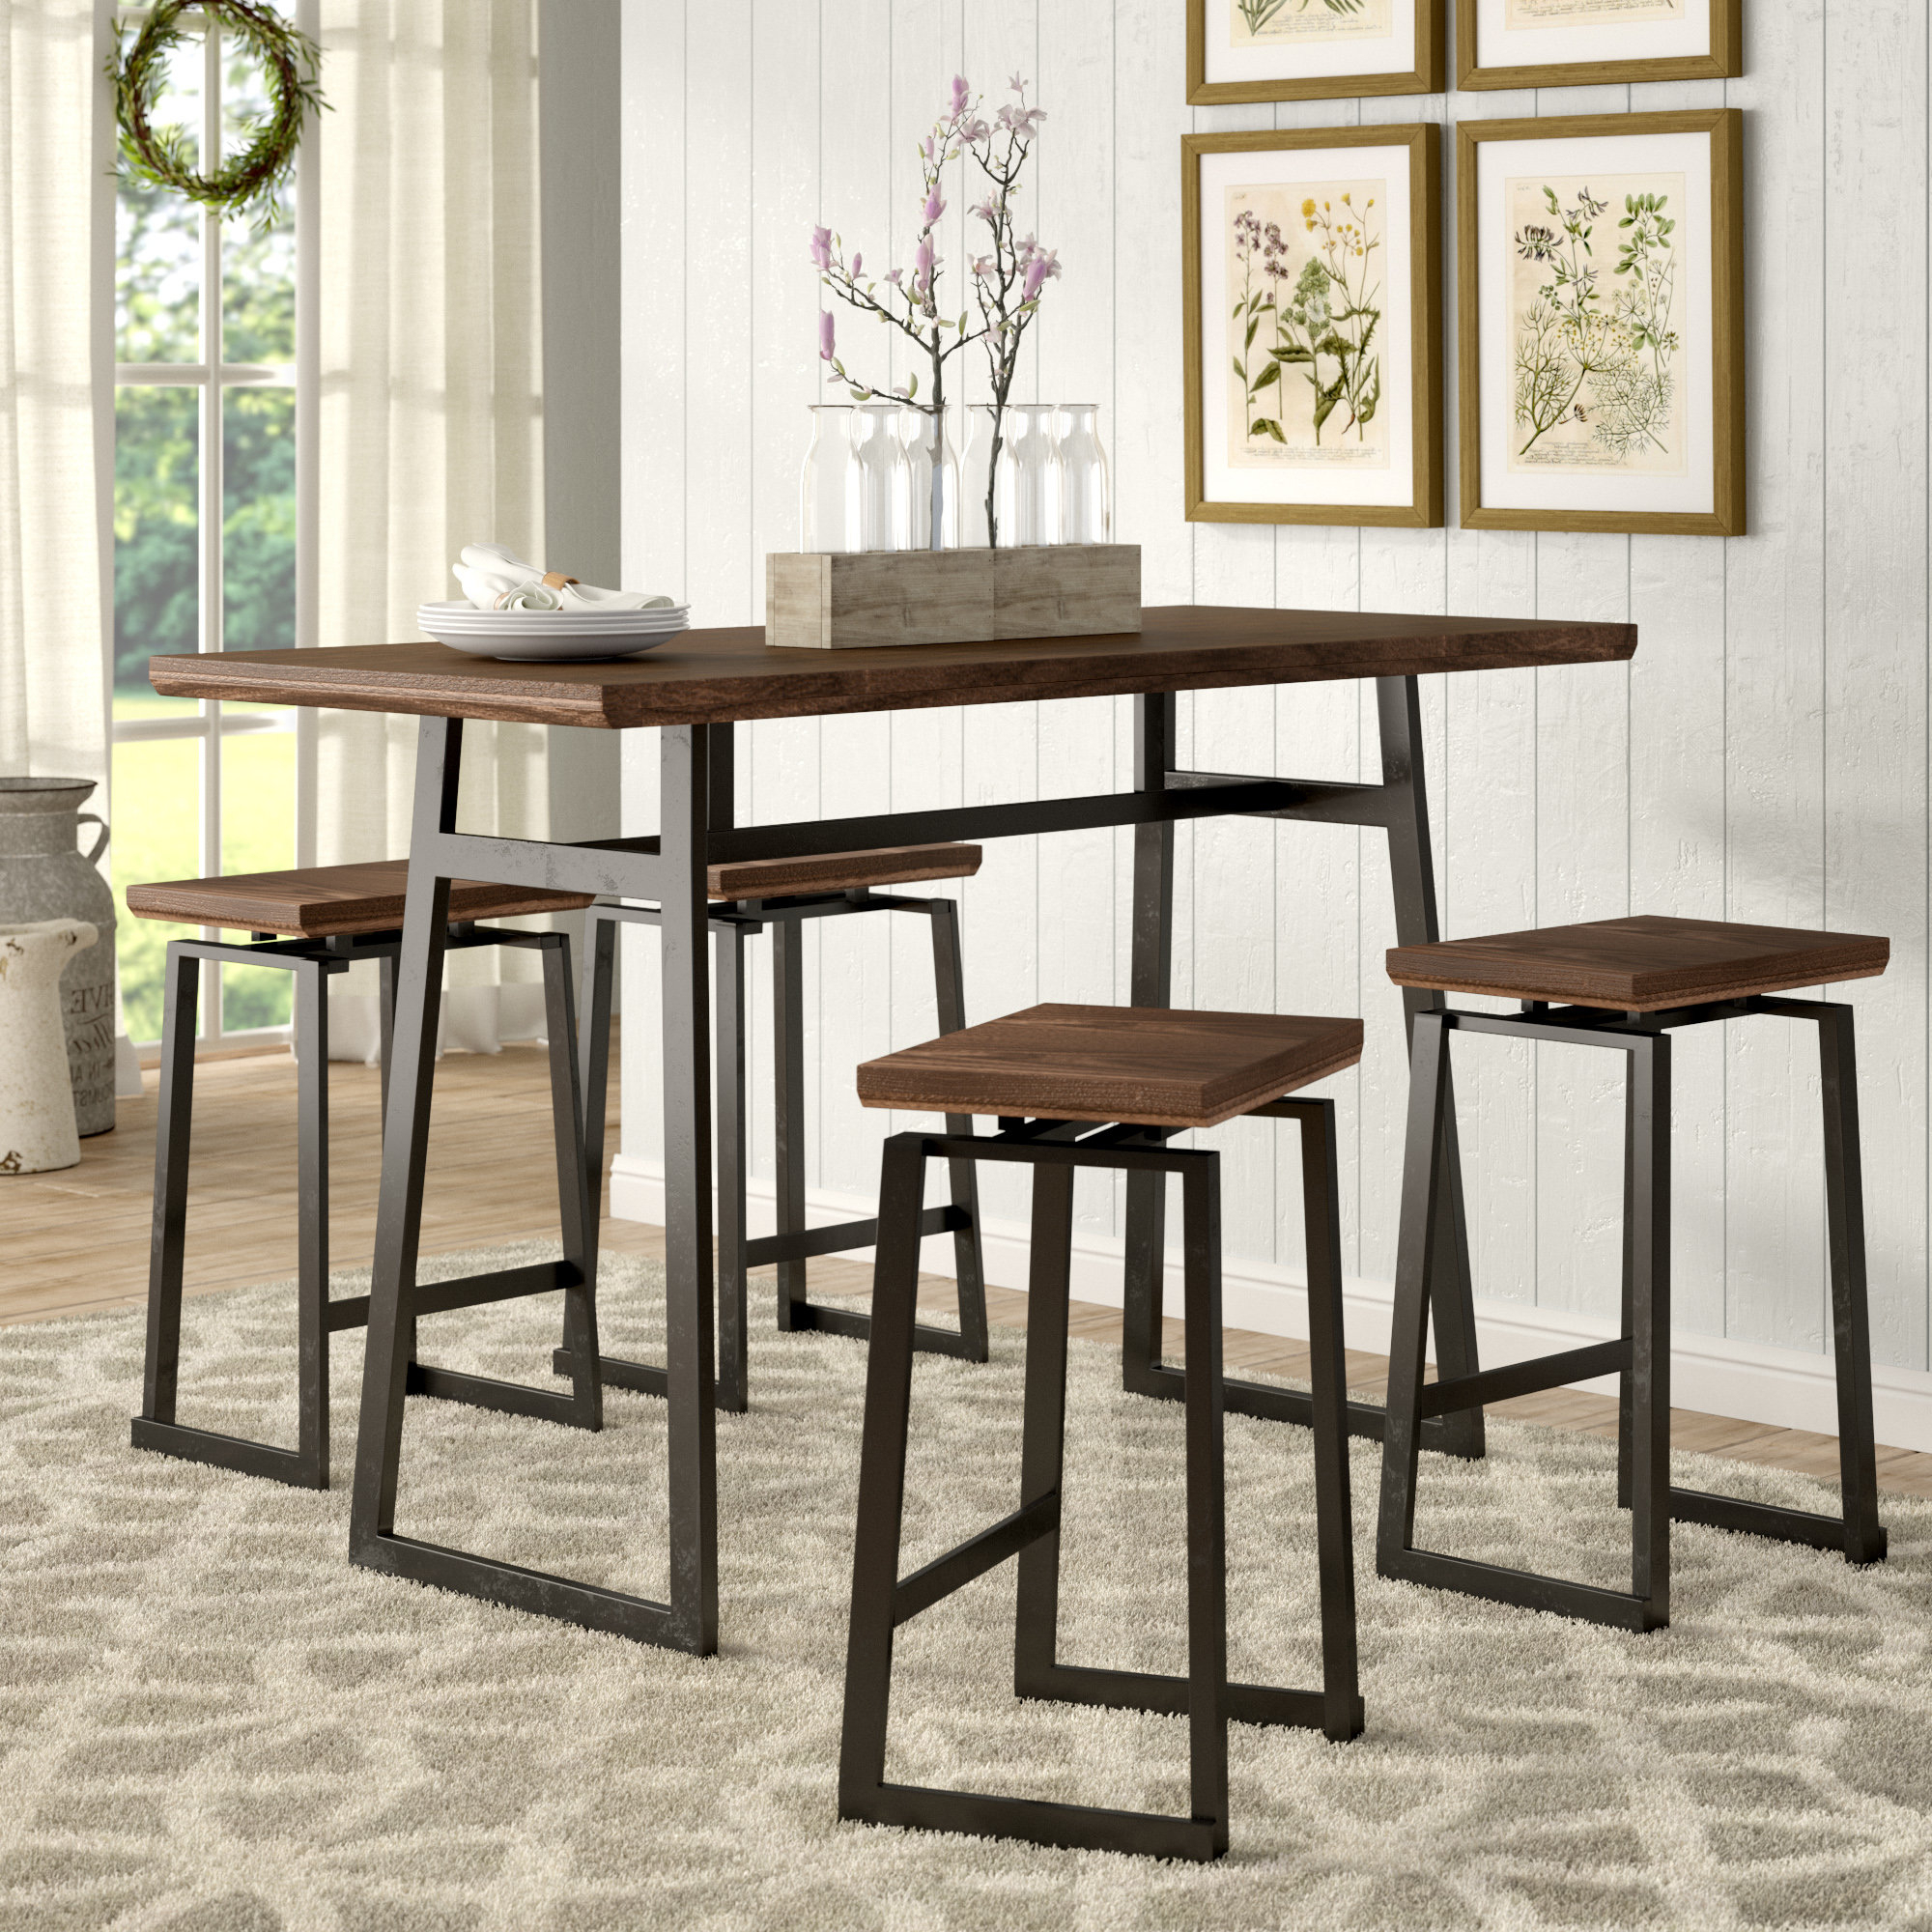 Trendy Winsted 4 Piece Counter Height Dining Sets Within Cassiopeia Industrial 5 Piece Counter Height Dining Set (Gallery 12 of 20)